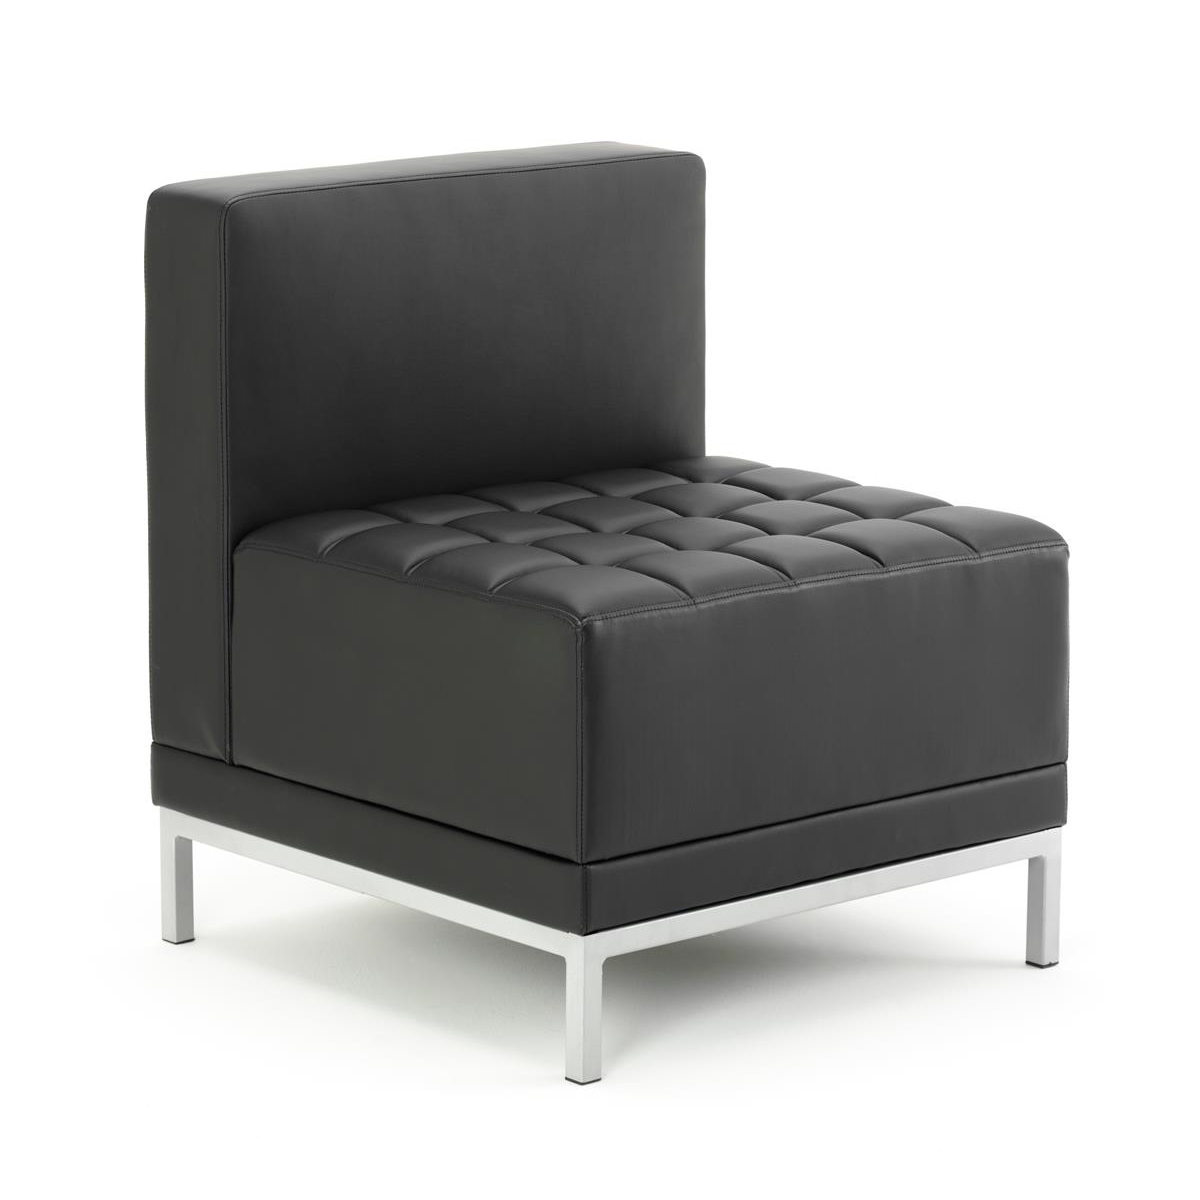 Image for #Sonix Modular Reception Chair Bonded Leather 660x520x440mm Ref BR000200